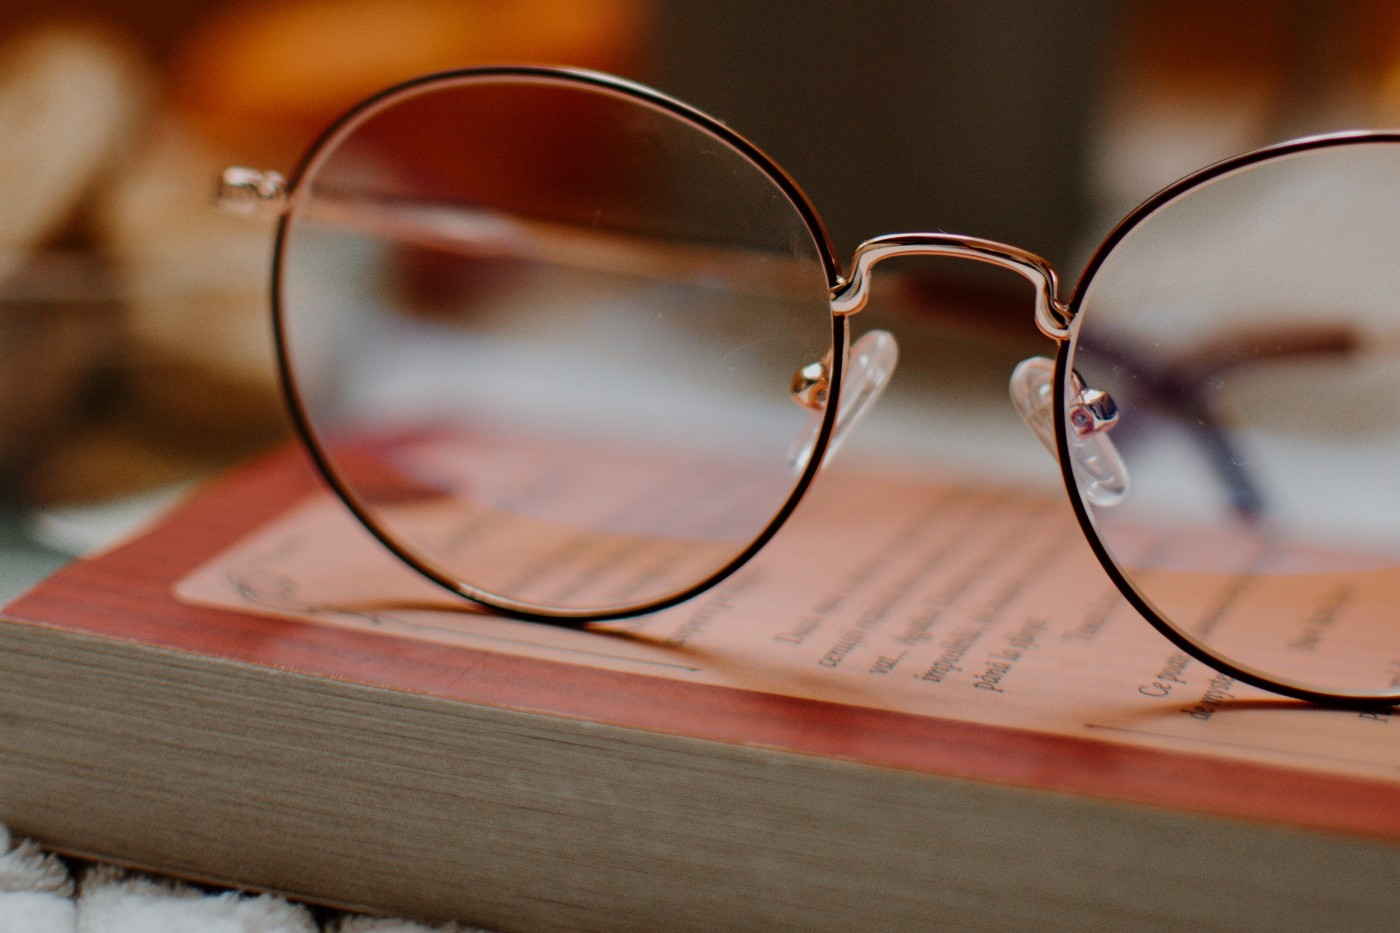 Reading glasses on book.